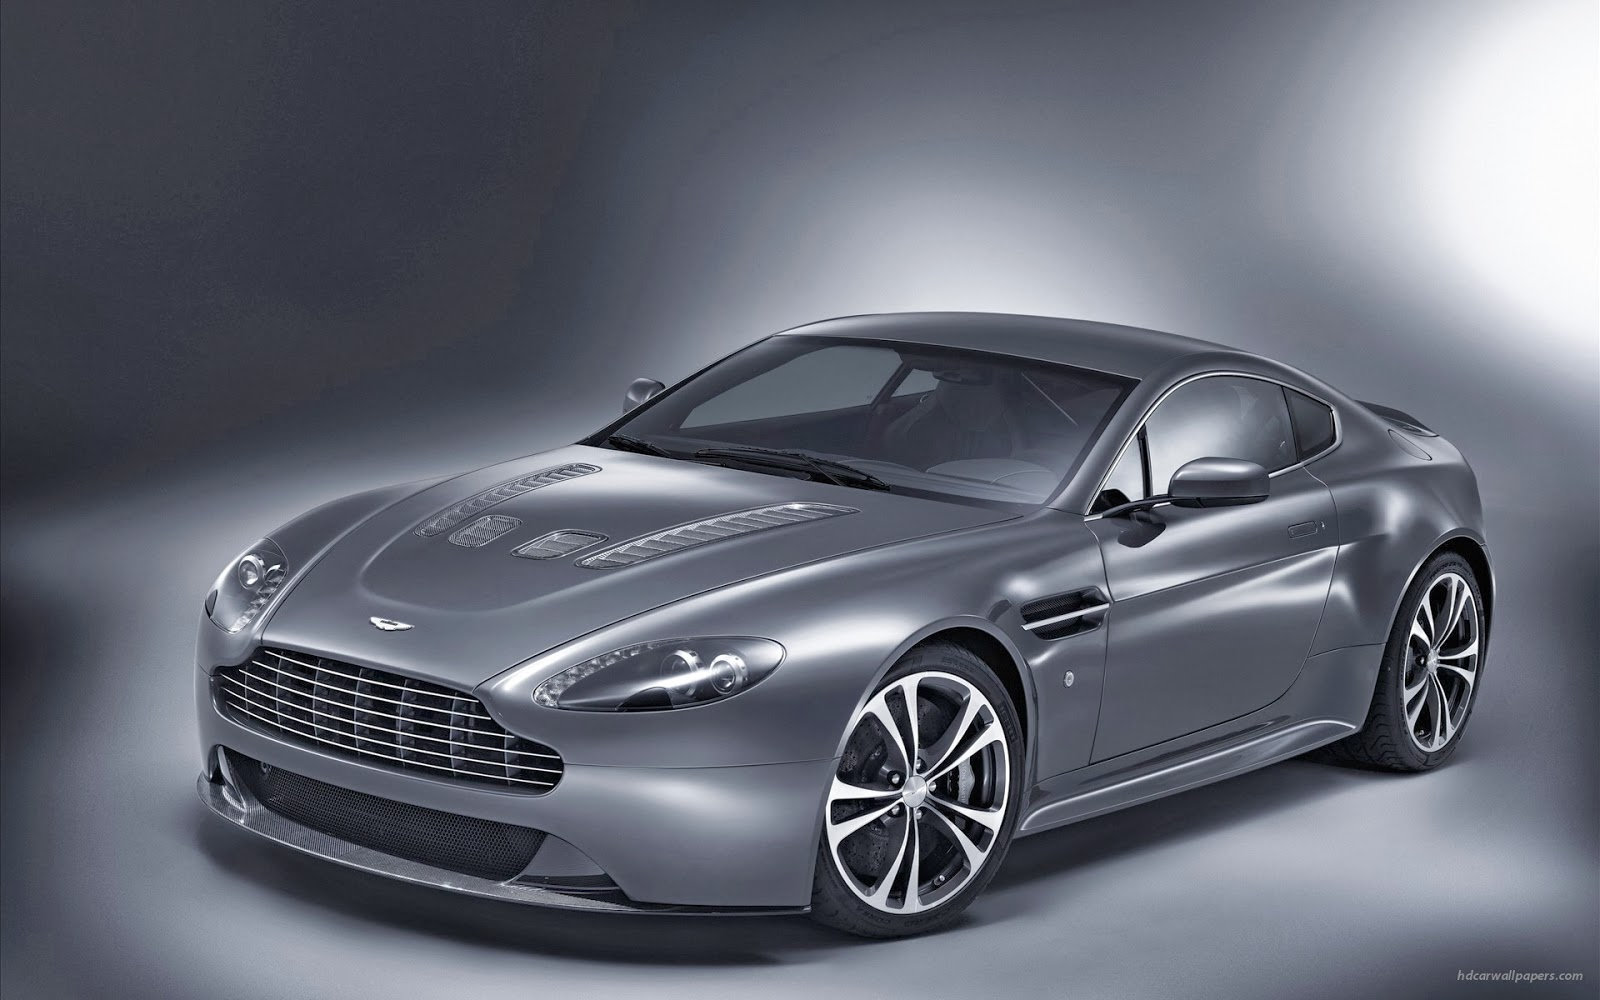 Aston Martin HD Wallpapers - HD Wallpapers Blog